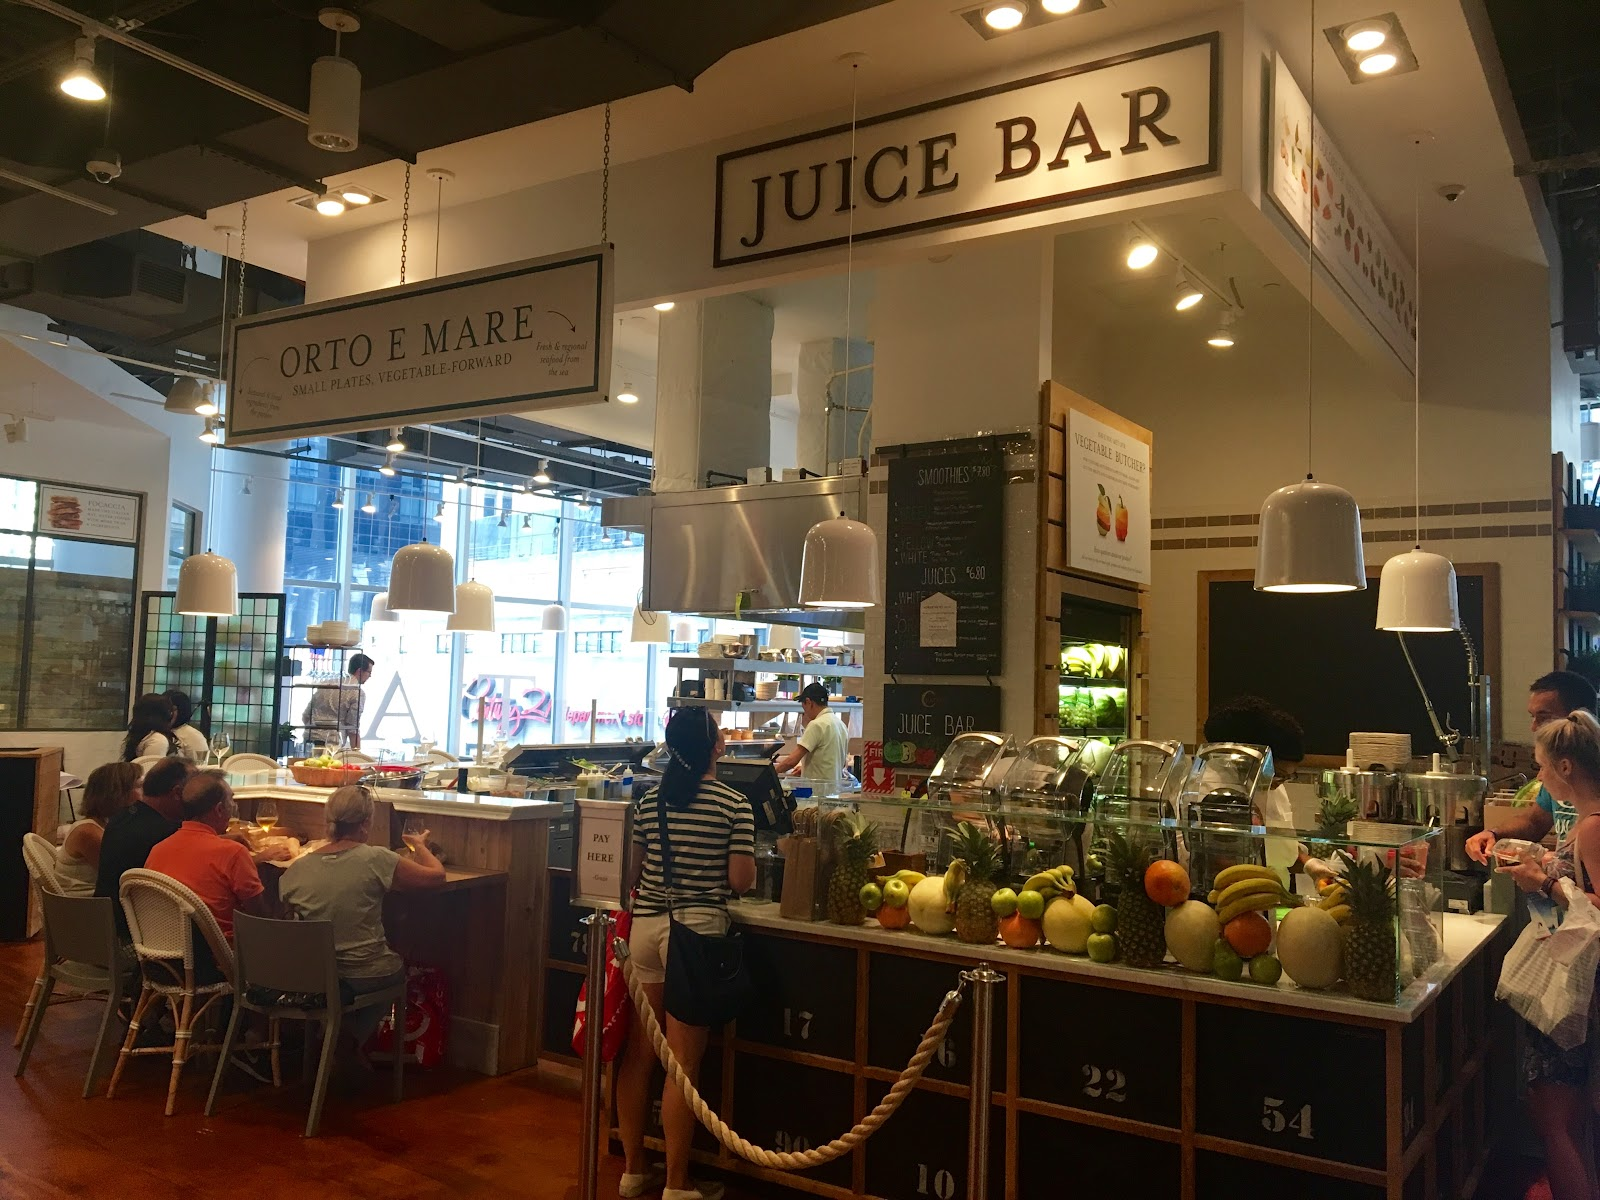 Juice Bar All Sorts Of Fresh Pressed Juices And Smoothies Are Available Along With A Special Spot For Eataly S Fruit Veggie Butcher